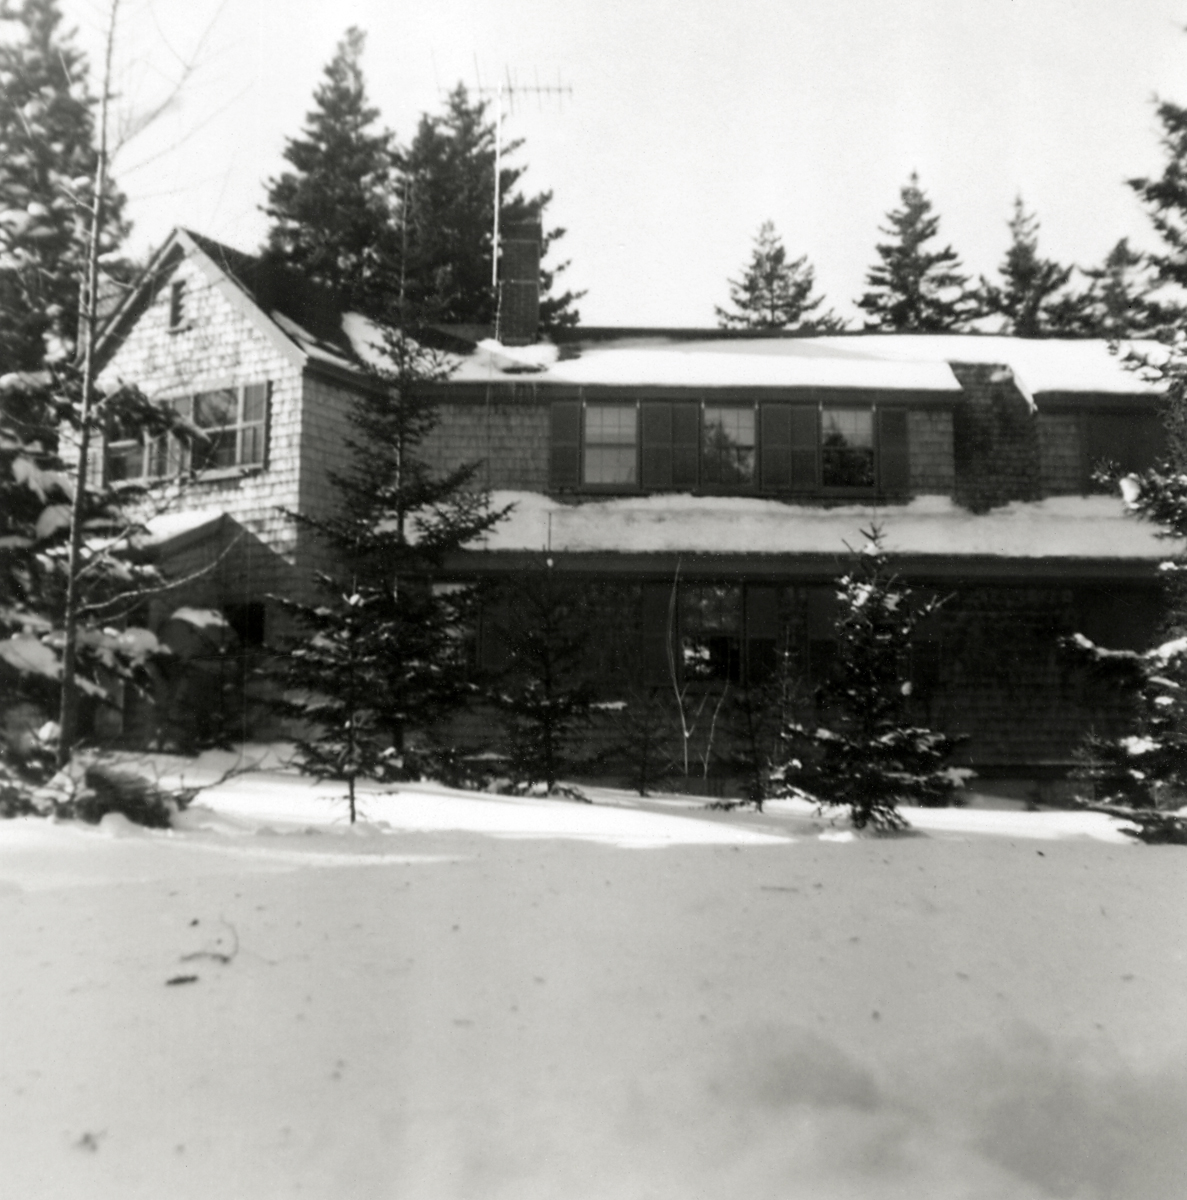 The Misses Martha P. and Charlotte H. Conant Cottage